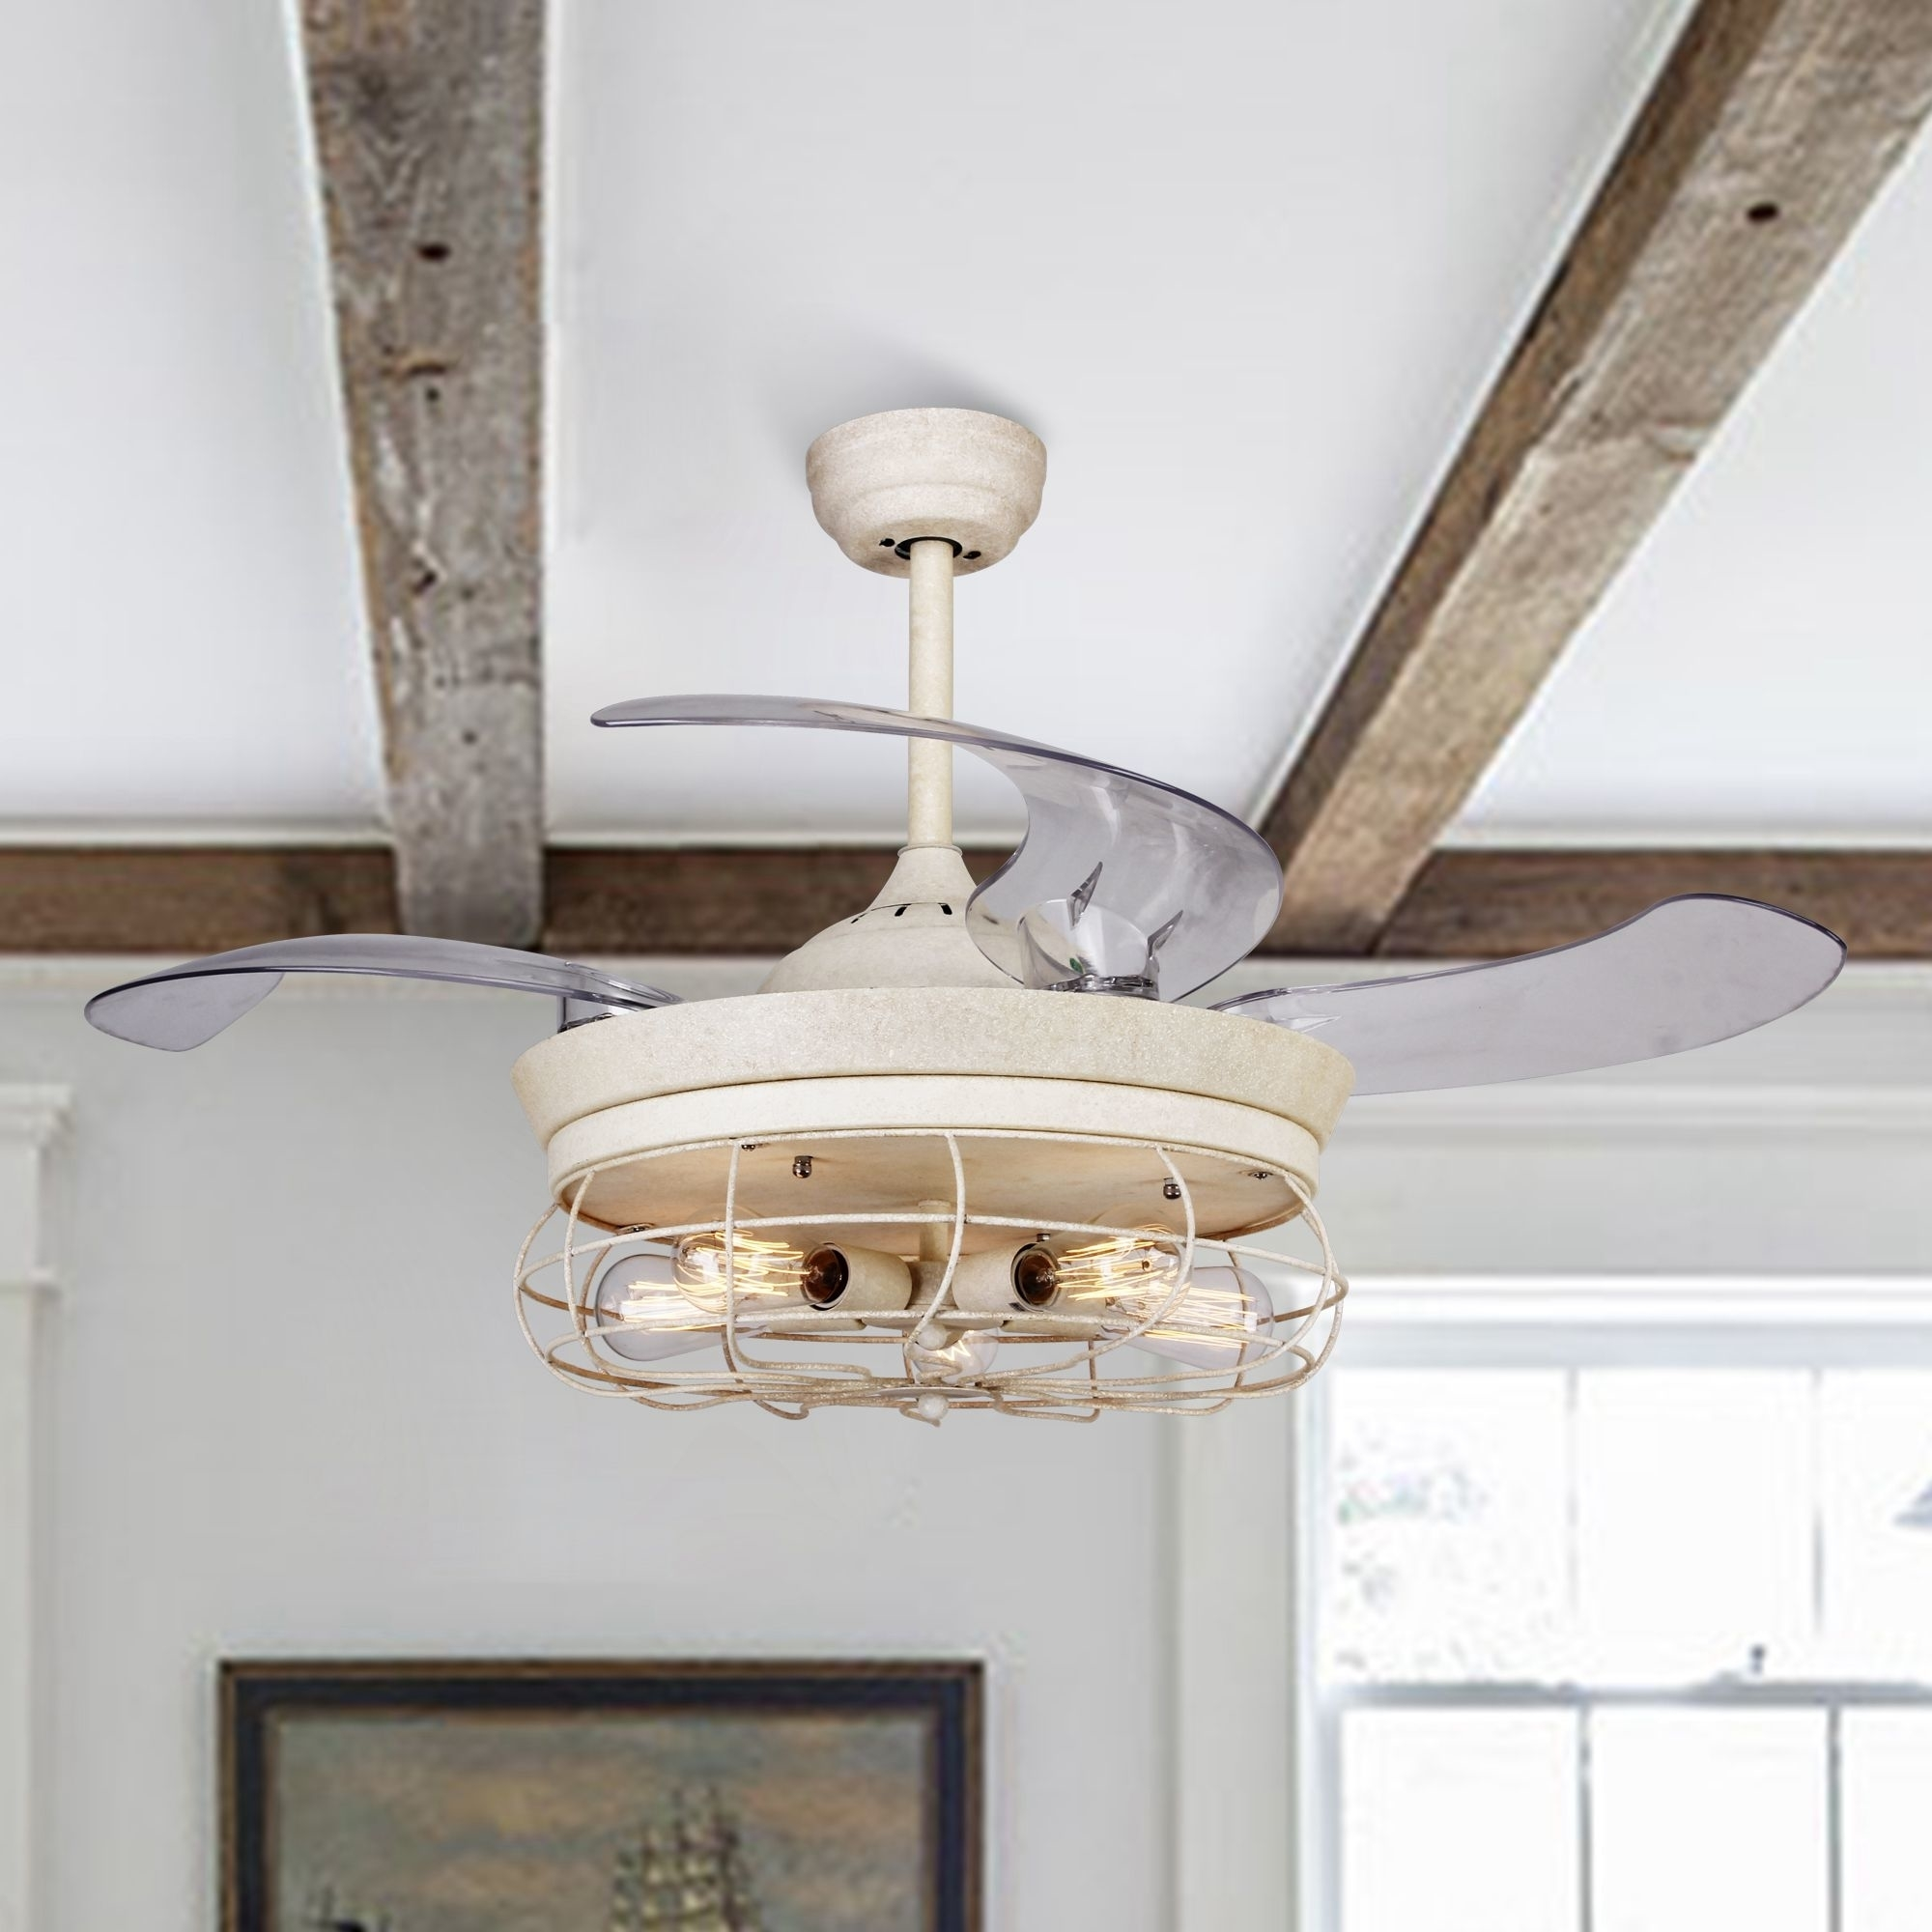 Rustic Ceiling Fan with Retractable Blades, Light and Remote ...